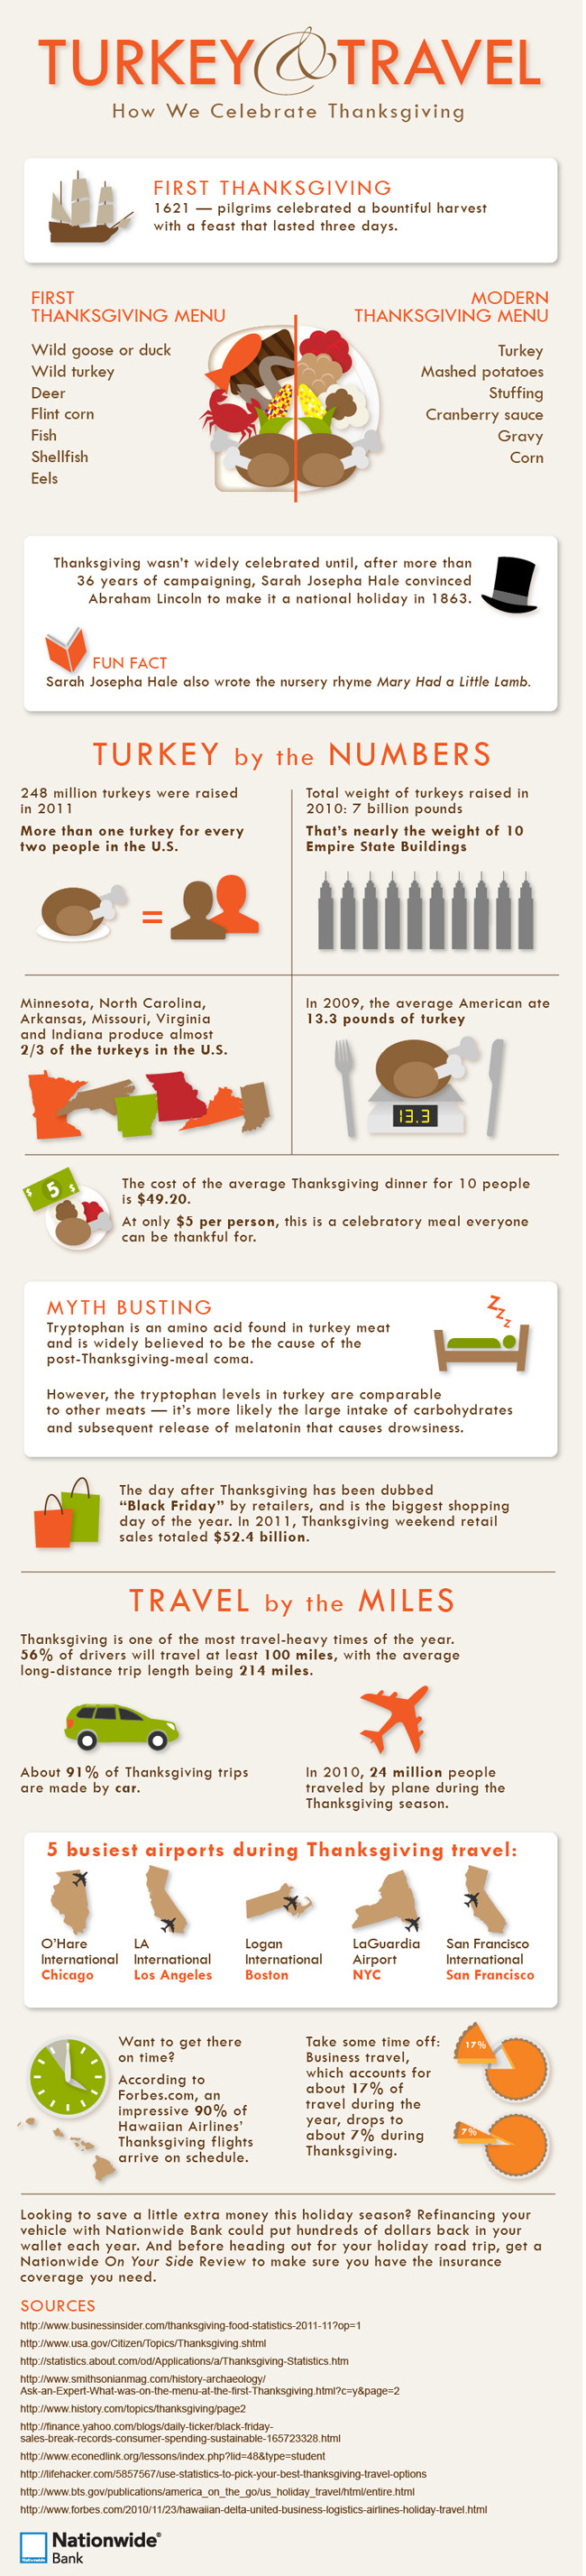 Thanksgiving Turkey Facts  The celebration of Thanksgiving Fun facts and statistics